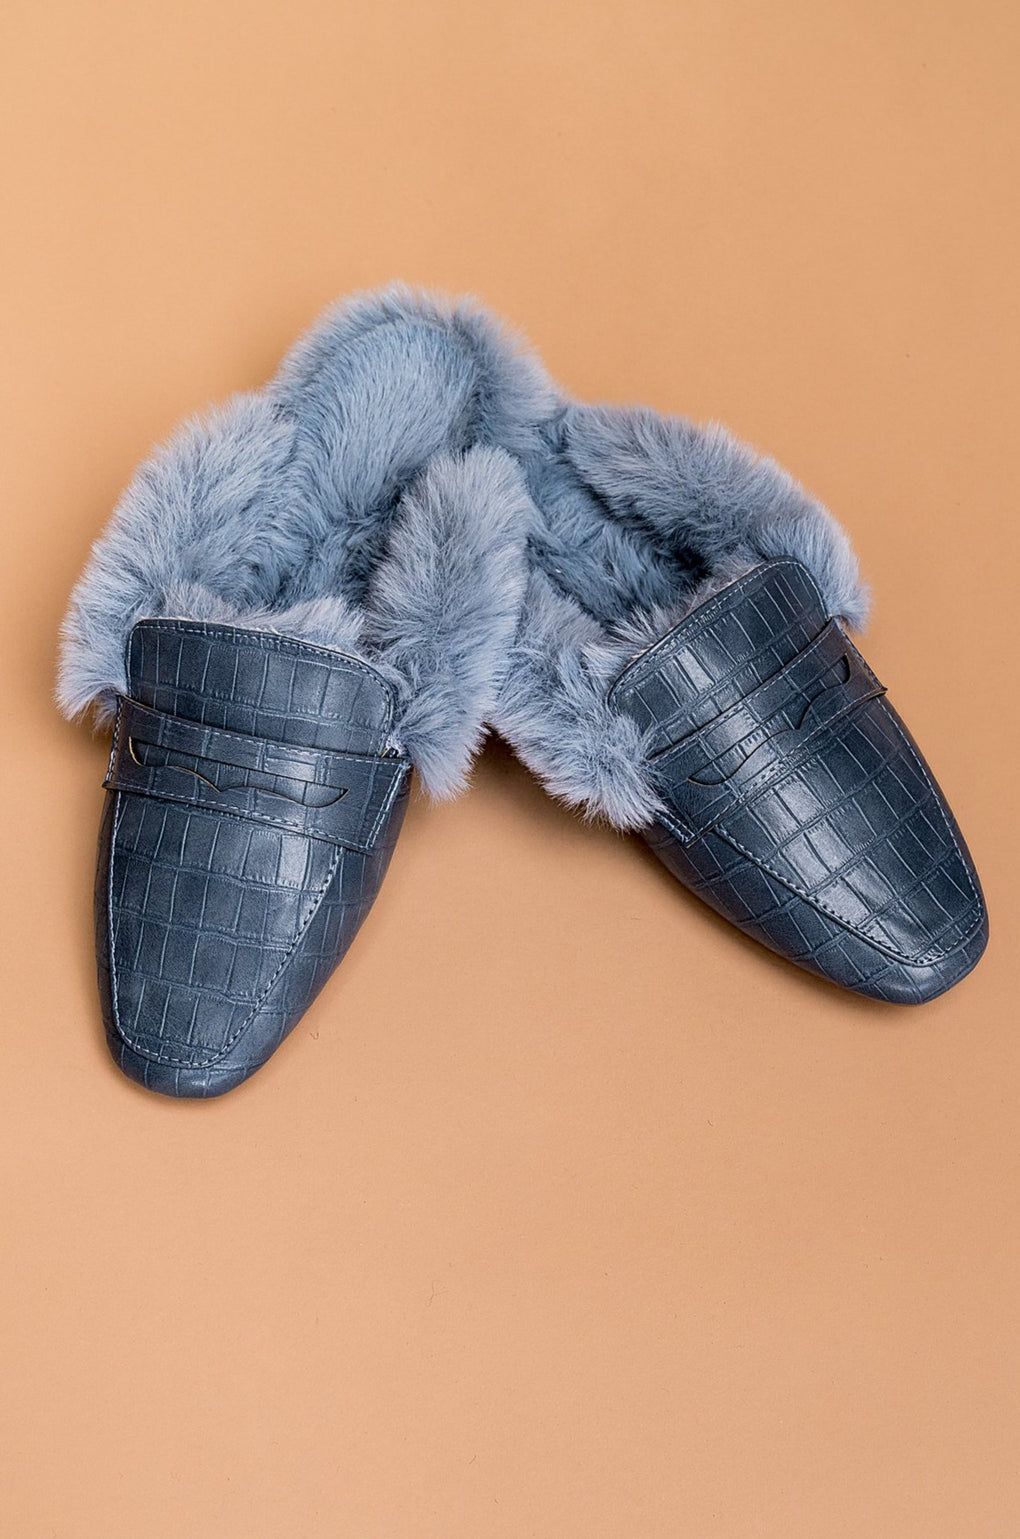 West Hollywood Faux Fur Croc Mules